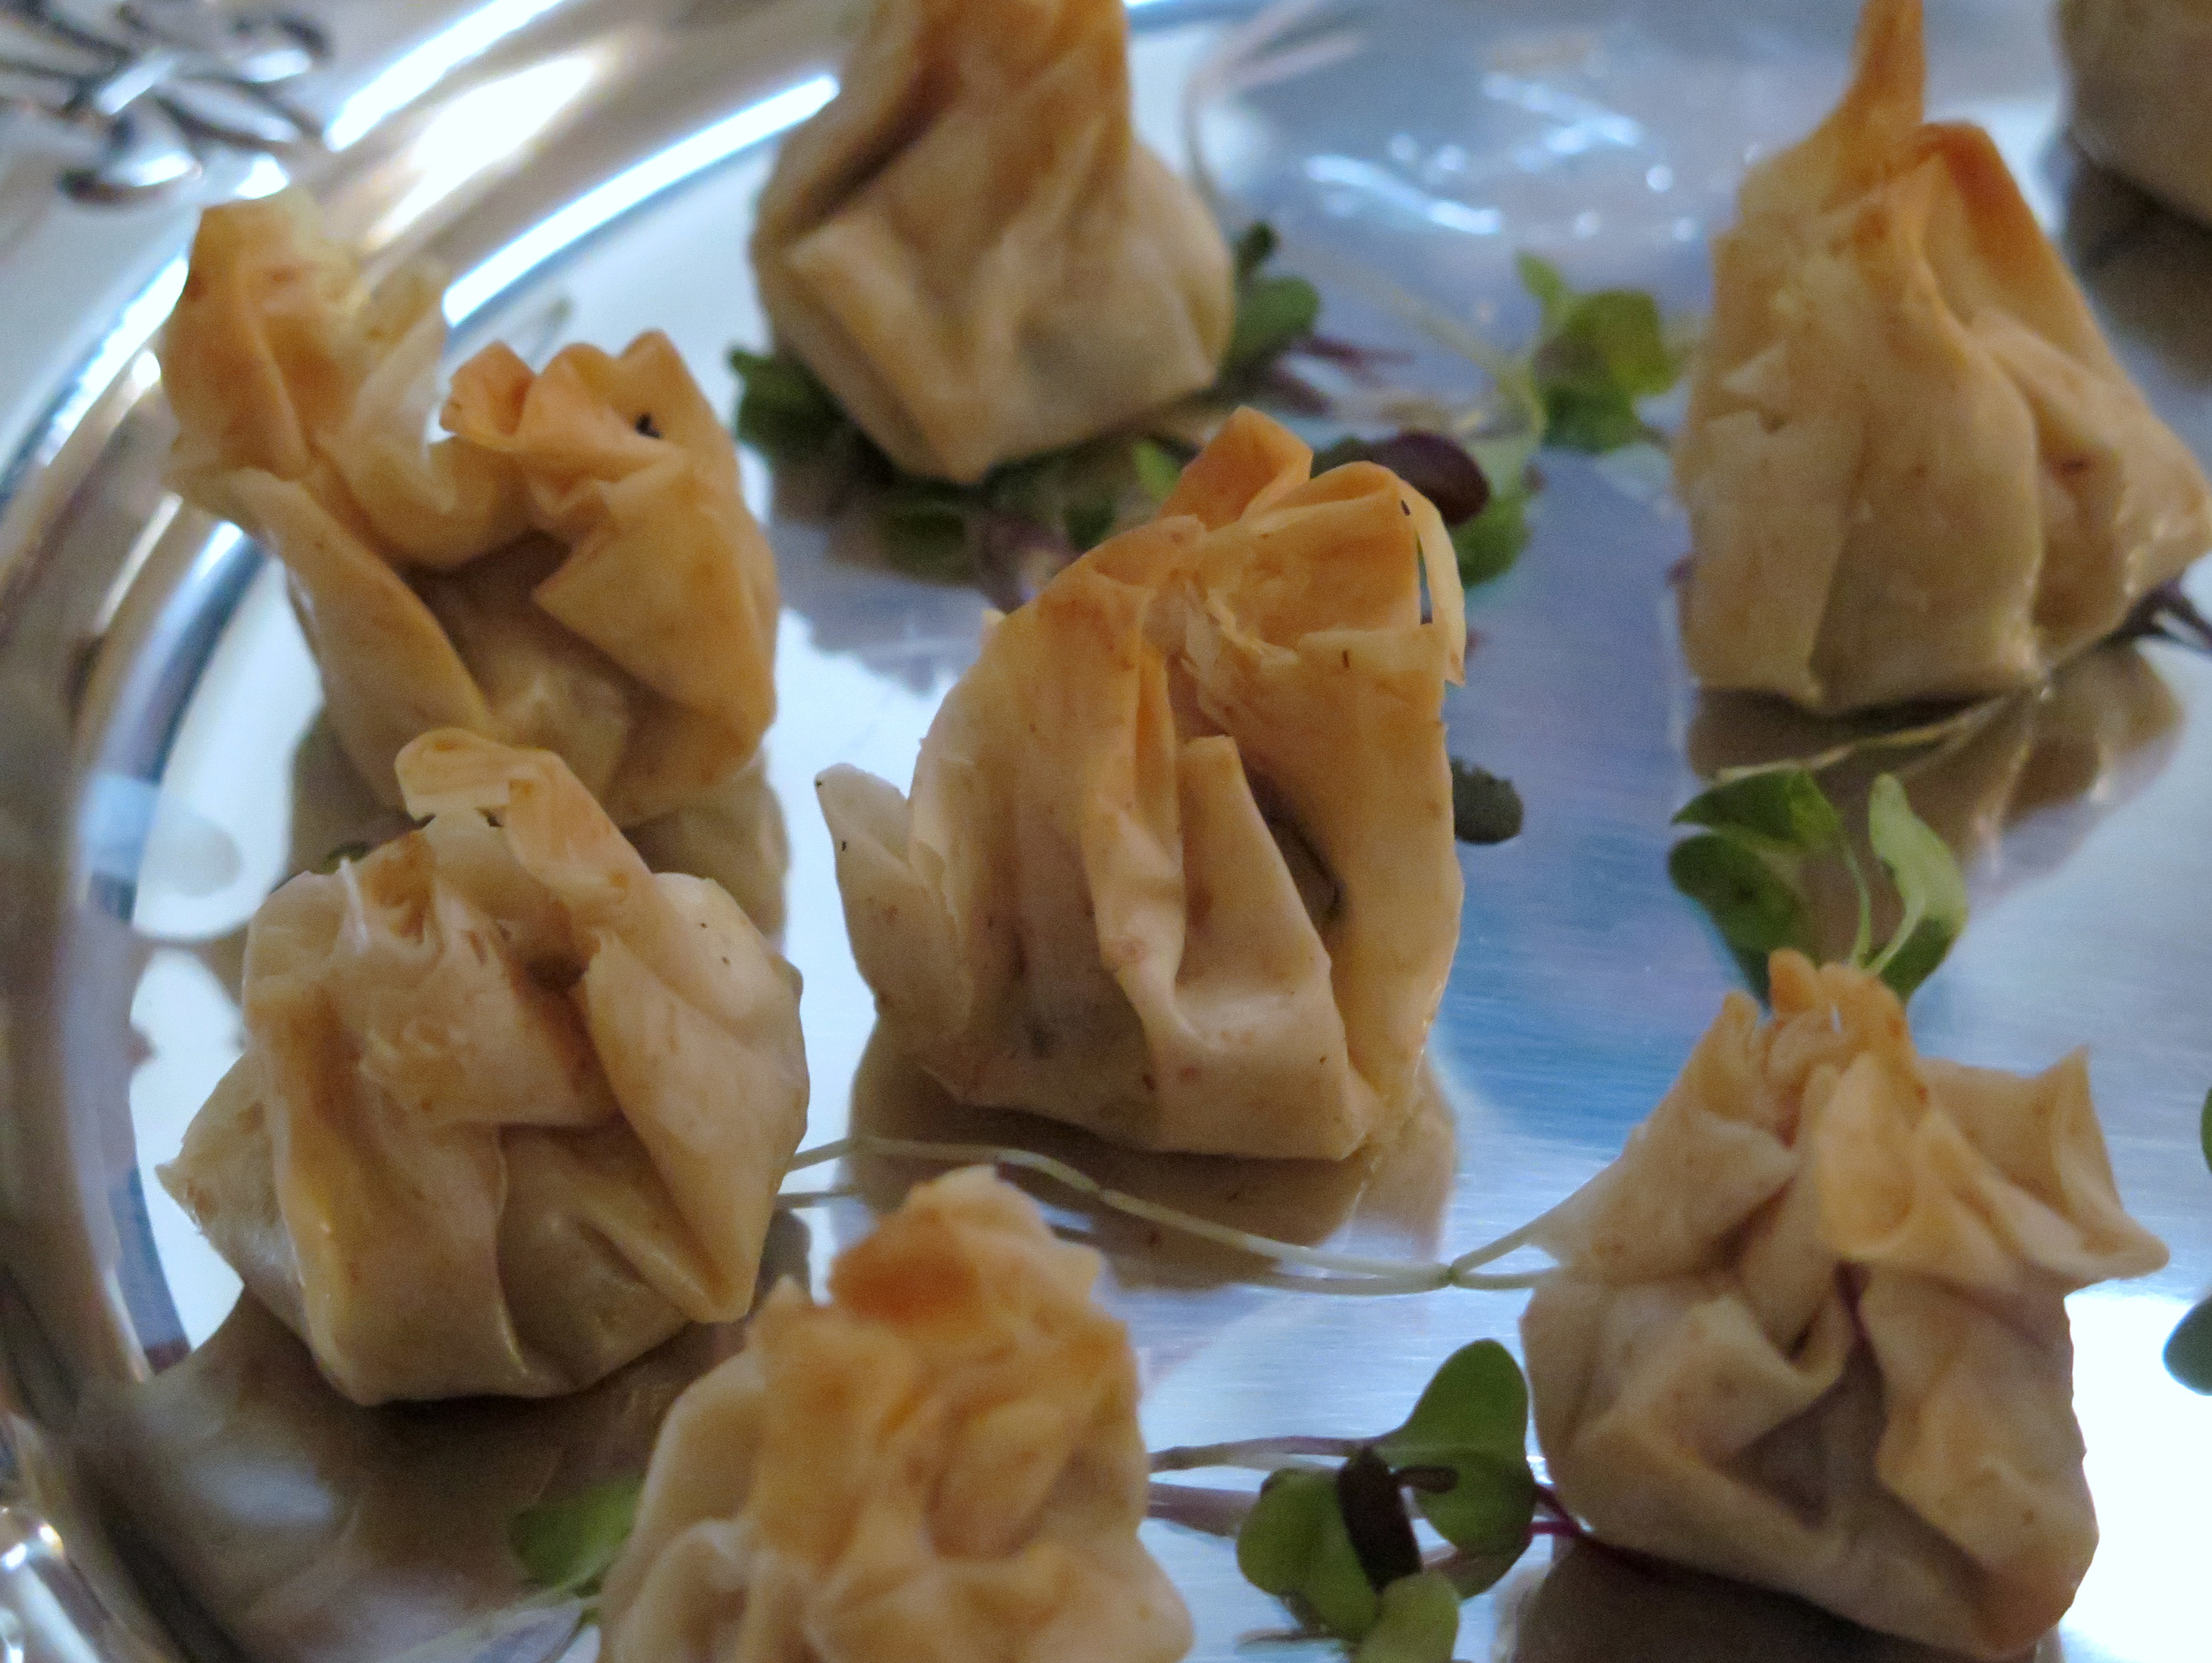 Actually, all of the passed hors d'oeuvres were great. This was a phyllo puff with mushroom and cashew cheese inside.